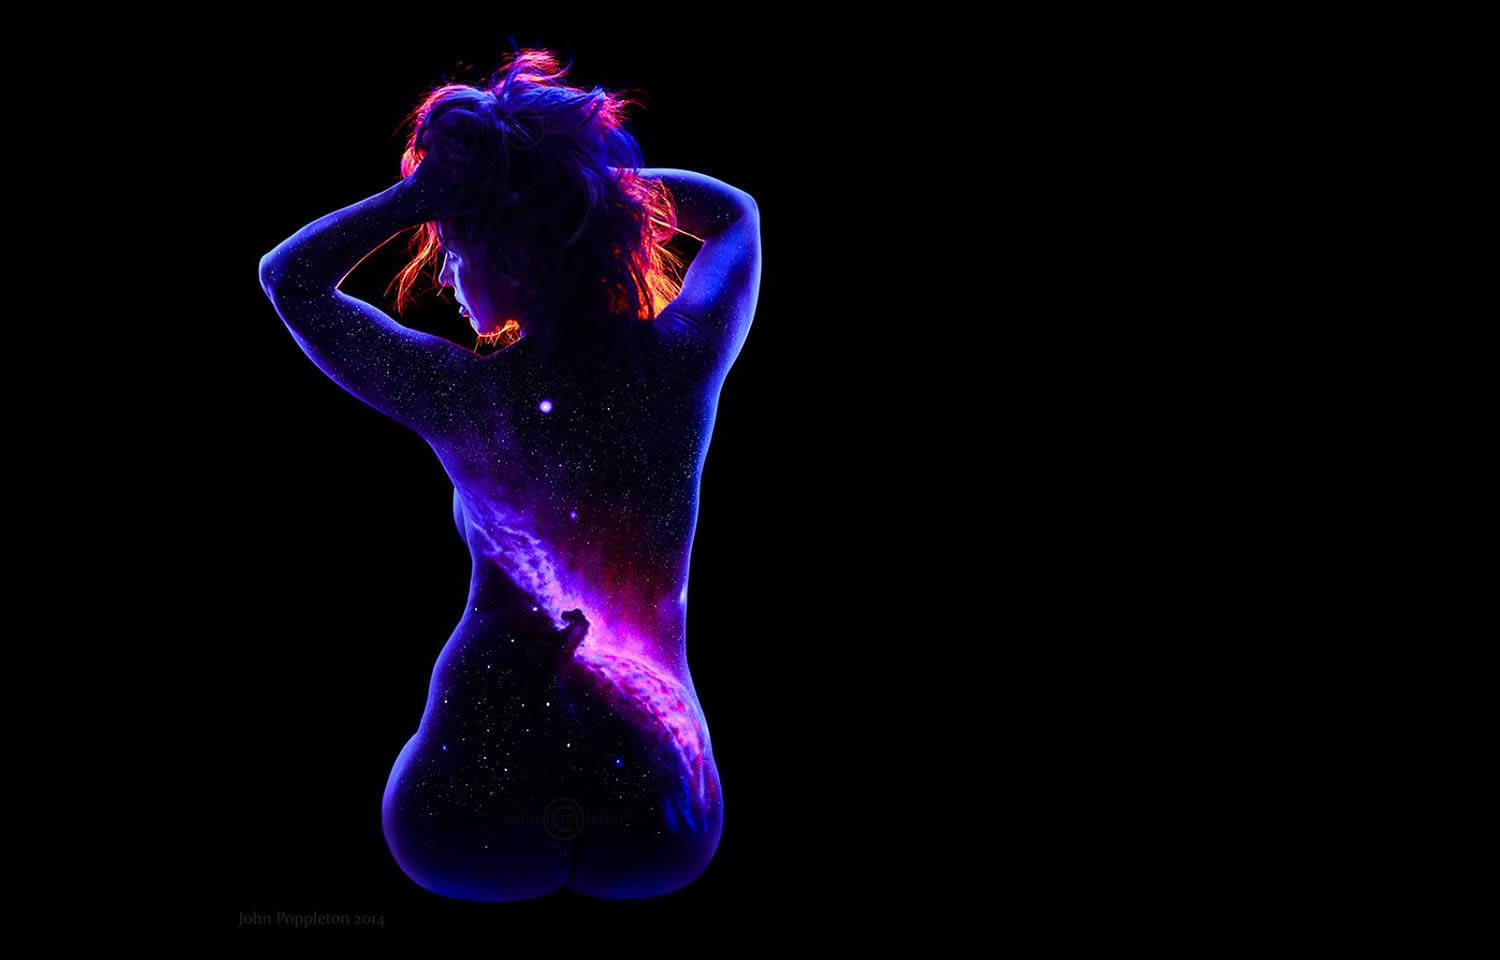 horse nebula, uv body painting, black light art by john poppleton